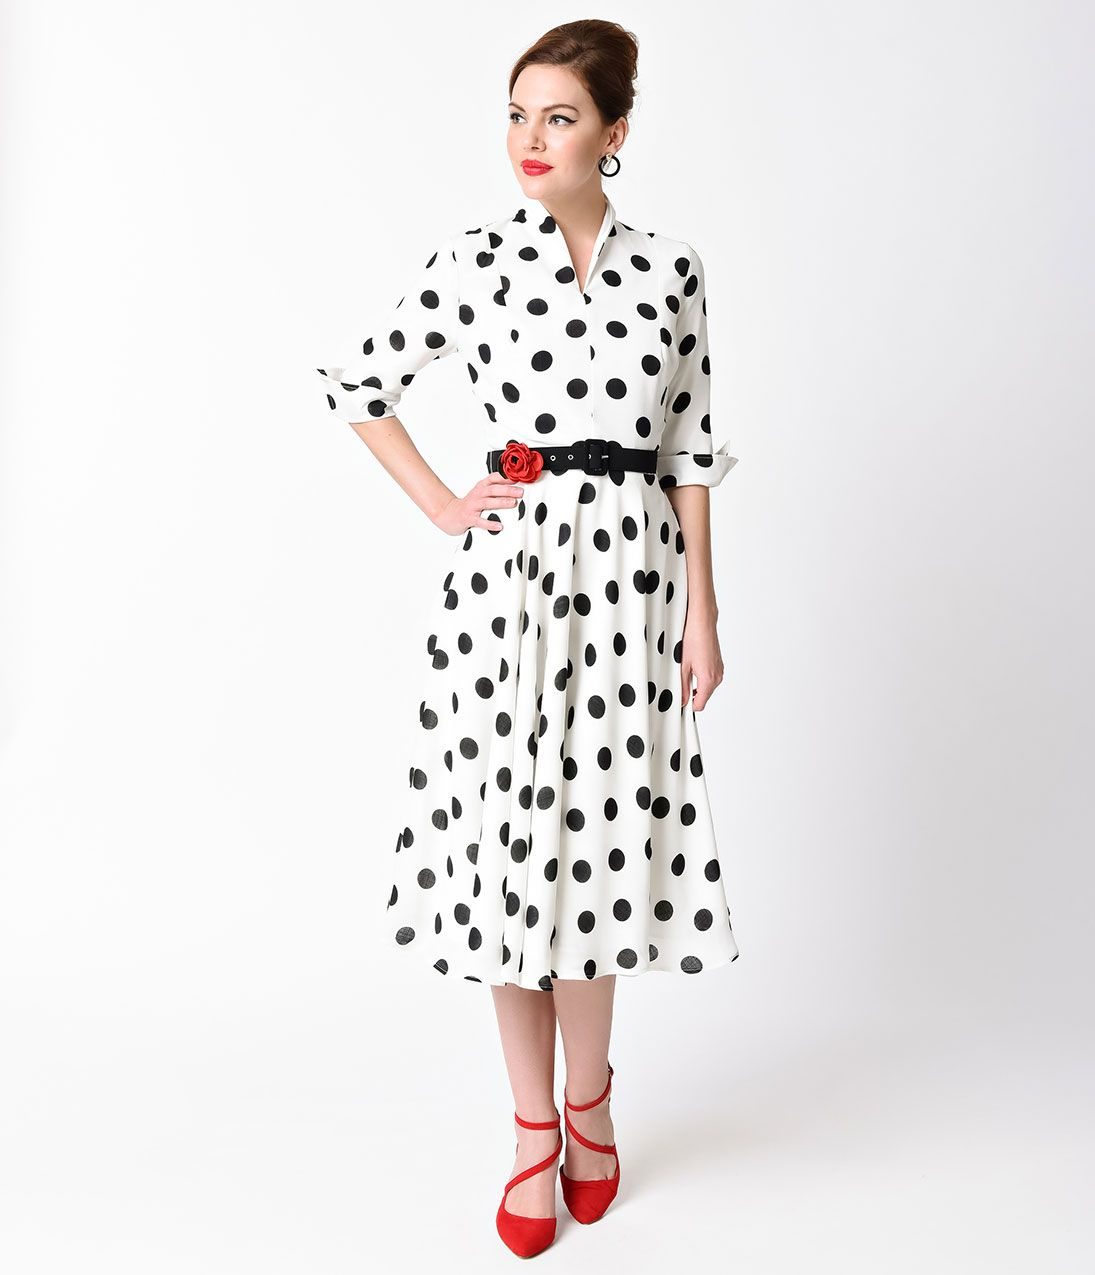 a7e0729615 1940s White Black Dotted Sleeved Hudson Shirt Dress $98.00 AT  vintagedancer.com